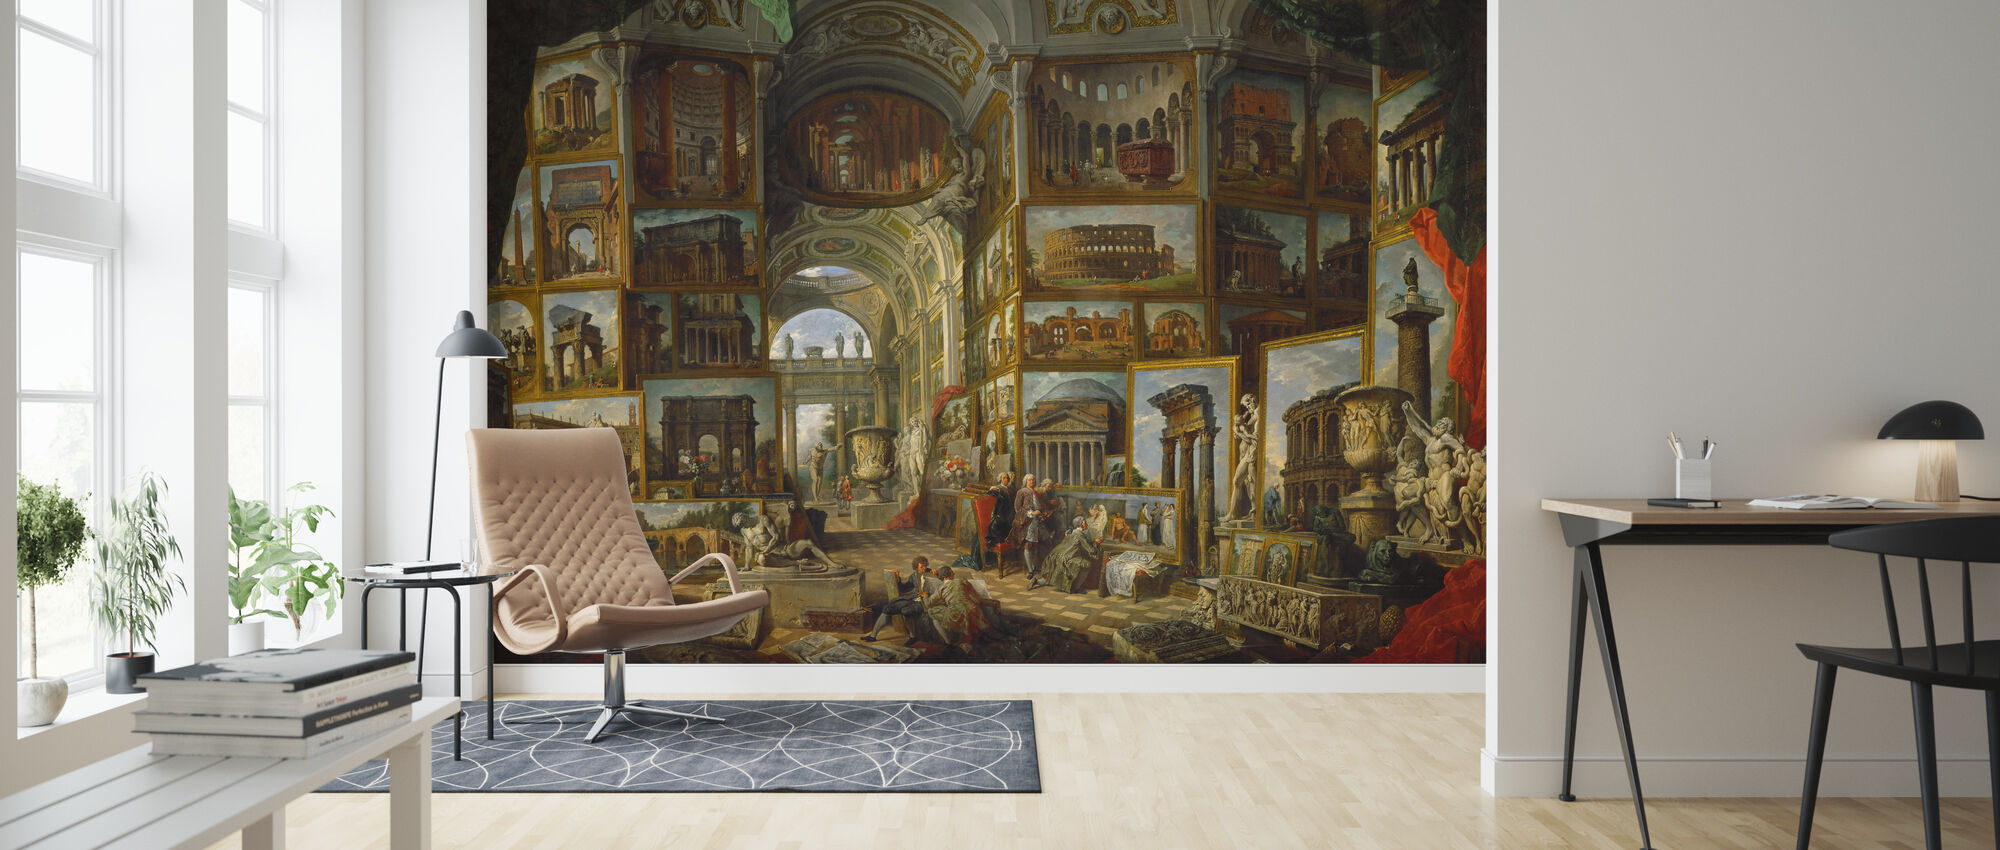 Ancient Rome Giovanni Paolo Panini Popular Wall Mural